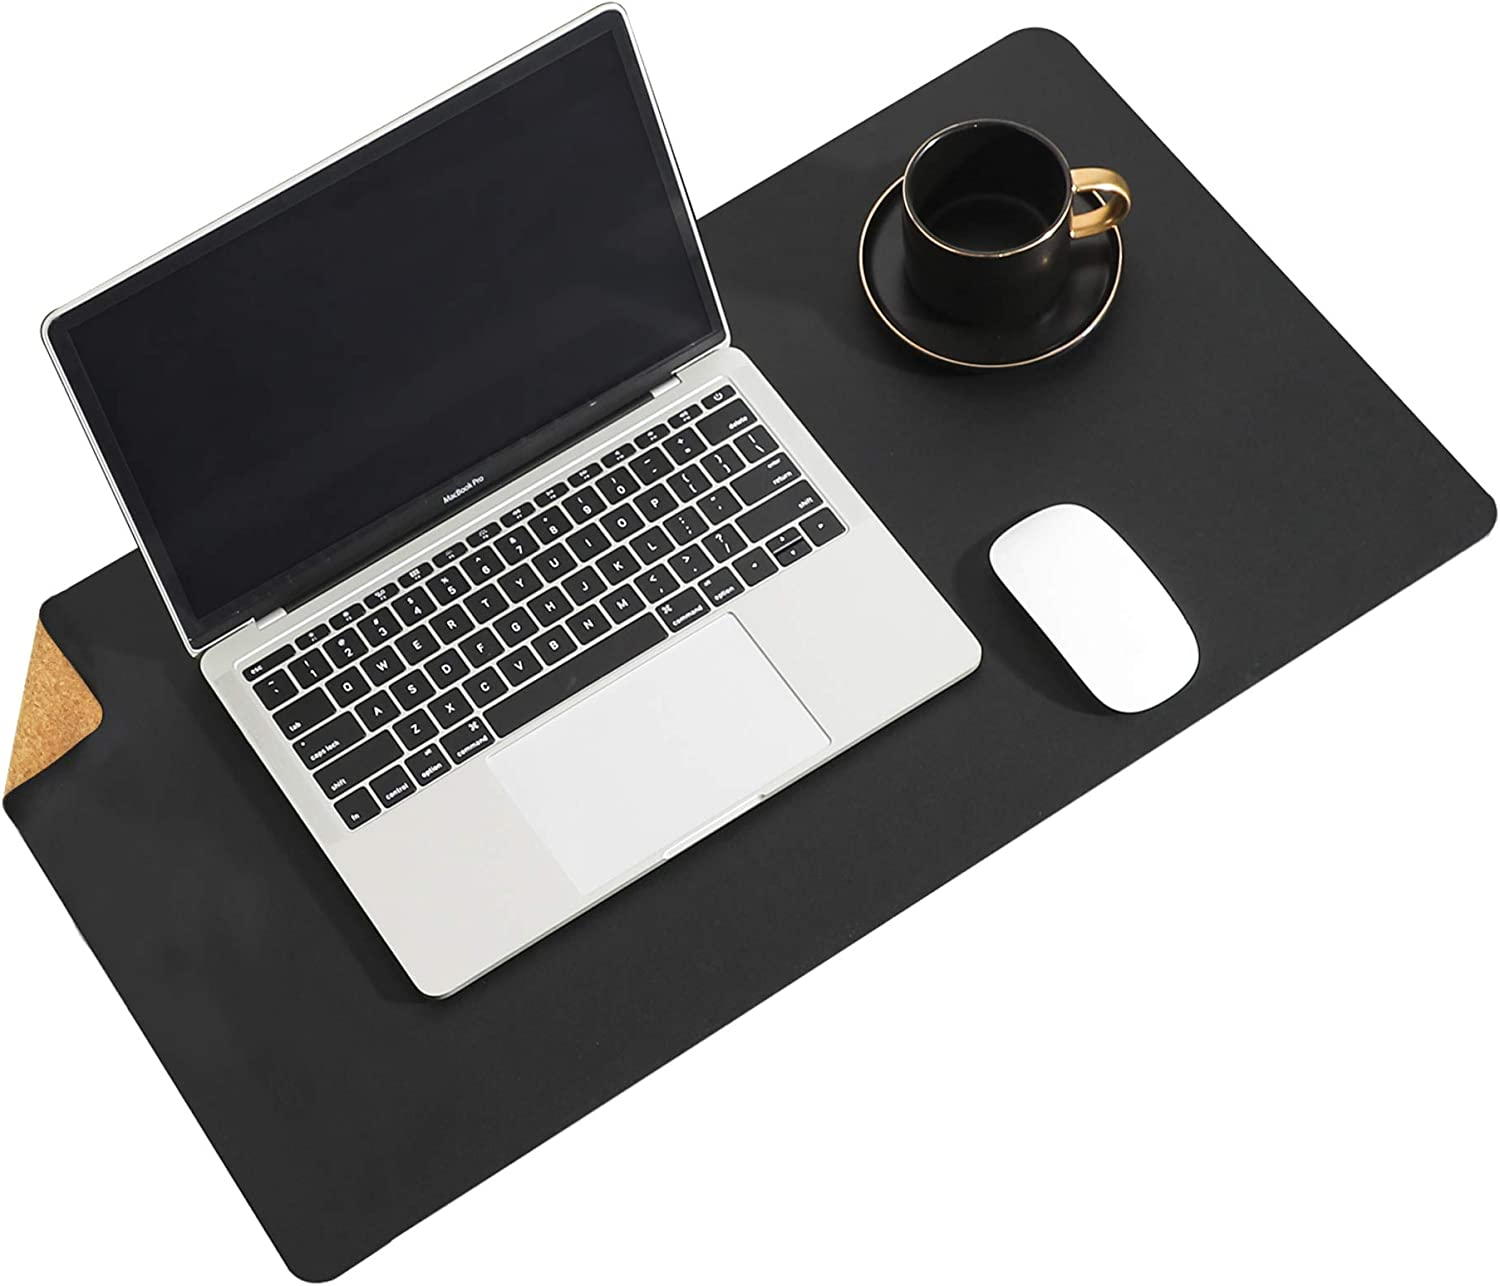 """Aothia Eco-Friendly Natural Cork & Leather Double-Sided Office Desk Pad & Mat Mouse Pad Smooth Surface Soft Easy Clean Waterproof PU Leather Desk Protector for Office/Home Game (Black,23.6""""x13.7"""")"""